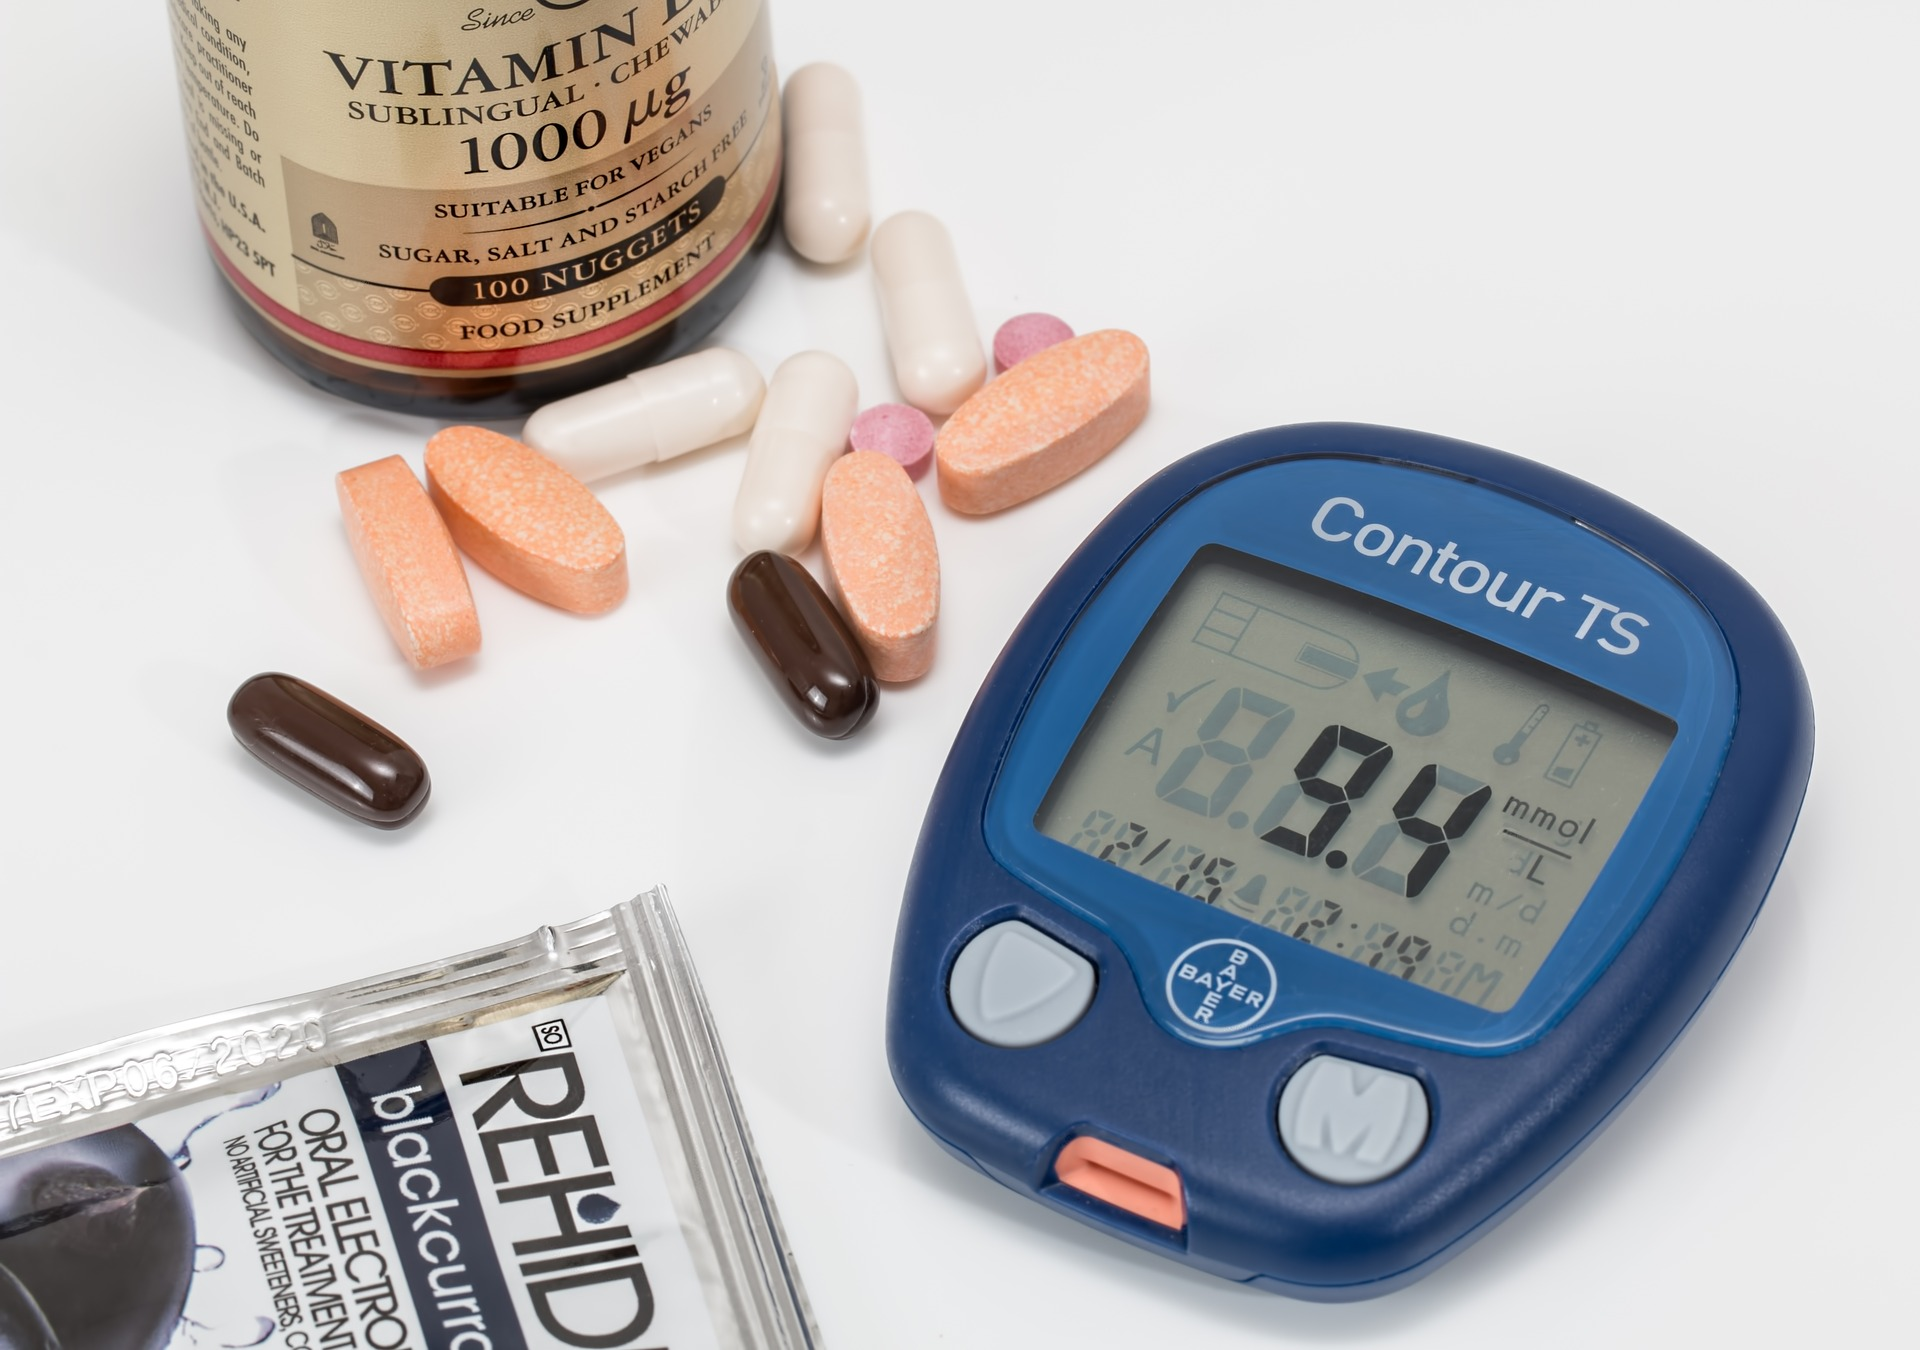 Drugs and a device used for diabetes maintenance